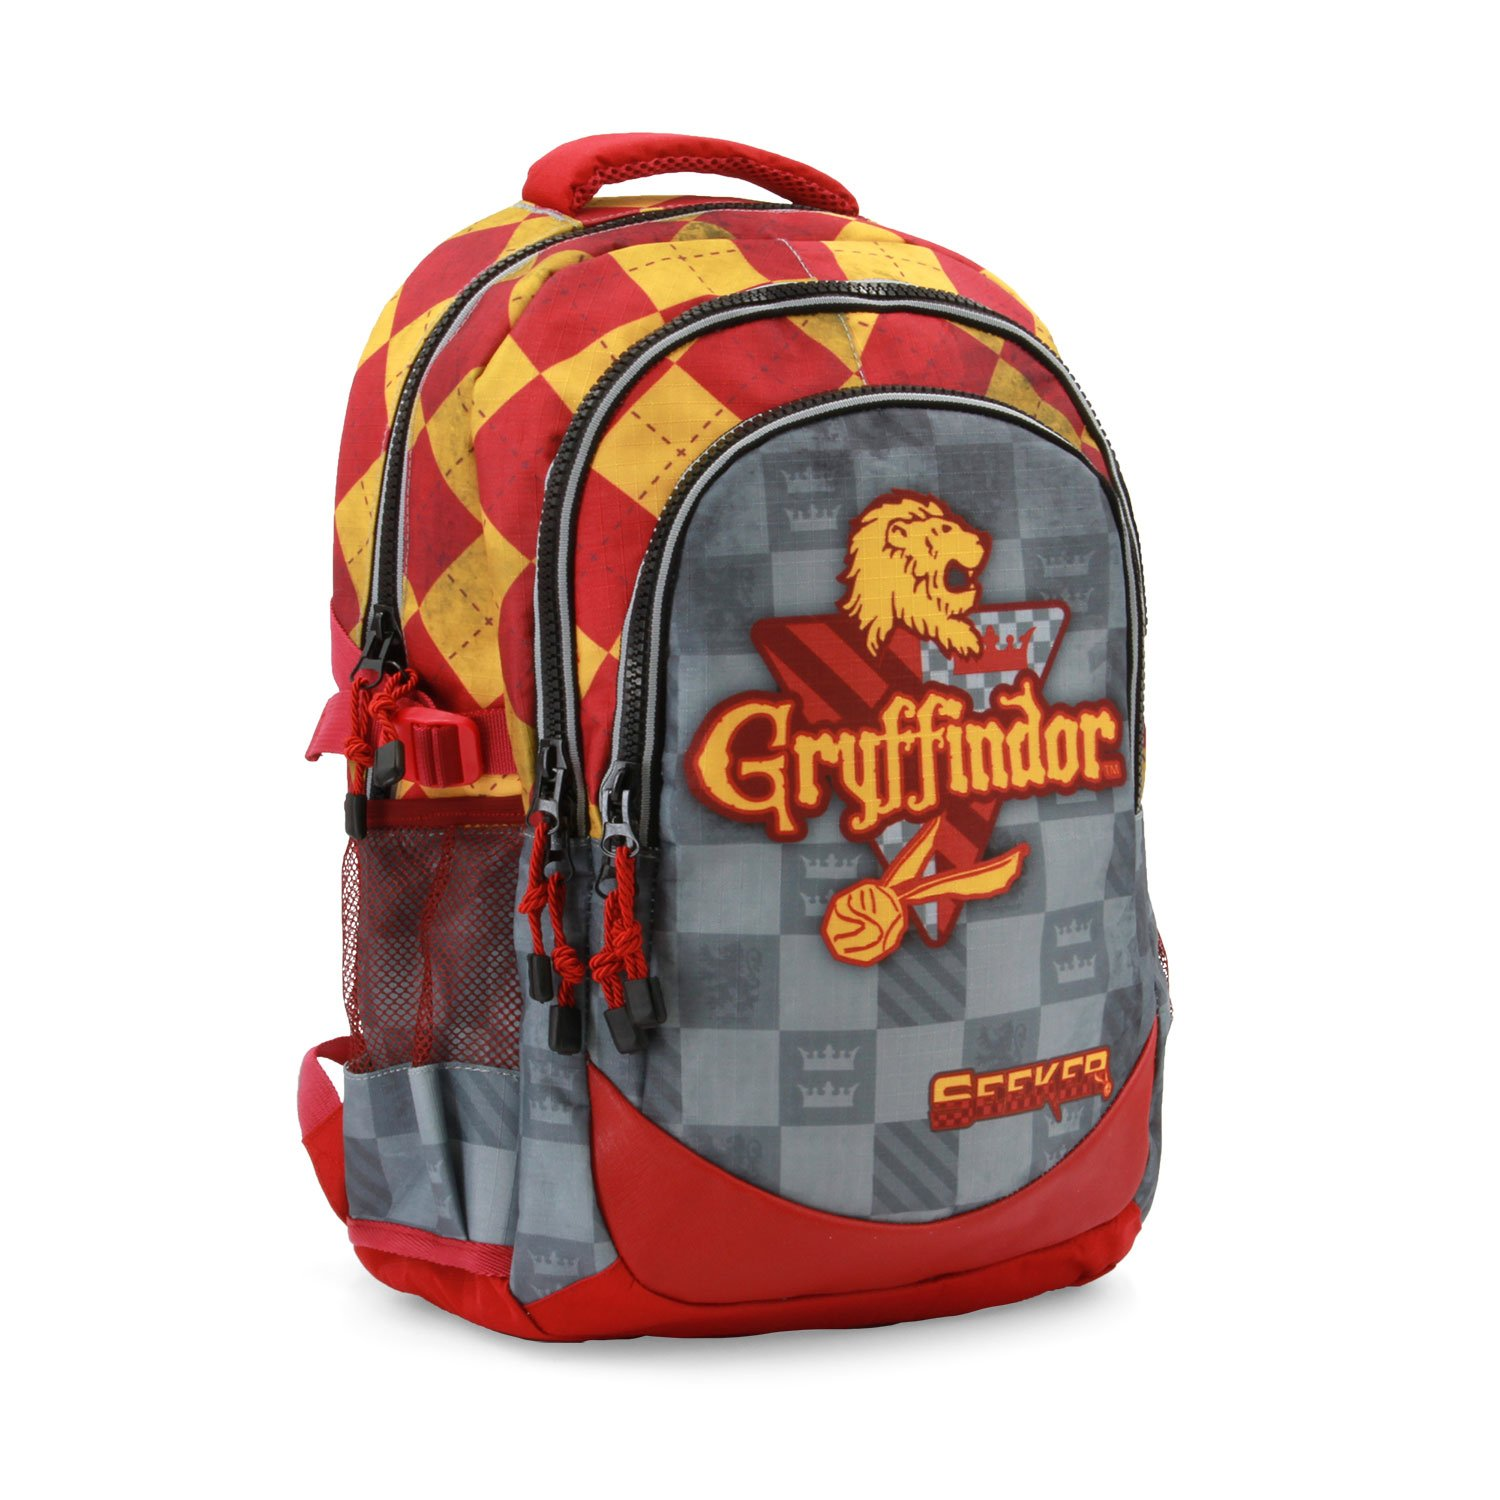 Harry Potter Quidditch Gryffindor-Running HS Rucksack Sac à Dos Loisir, 21 liters, Rouge Karactermania 37635